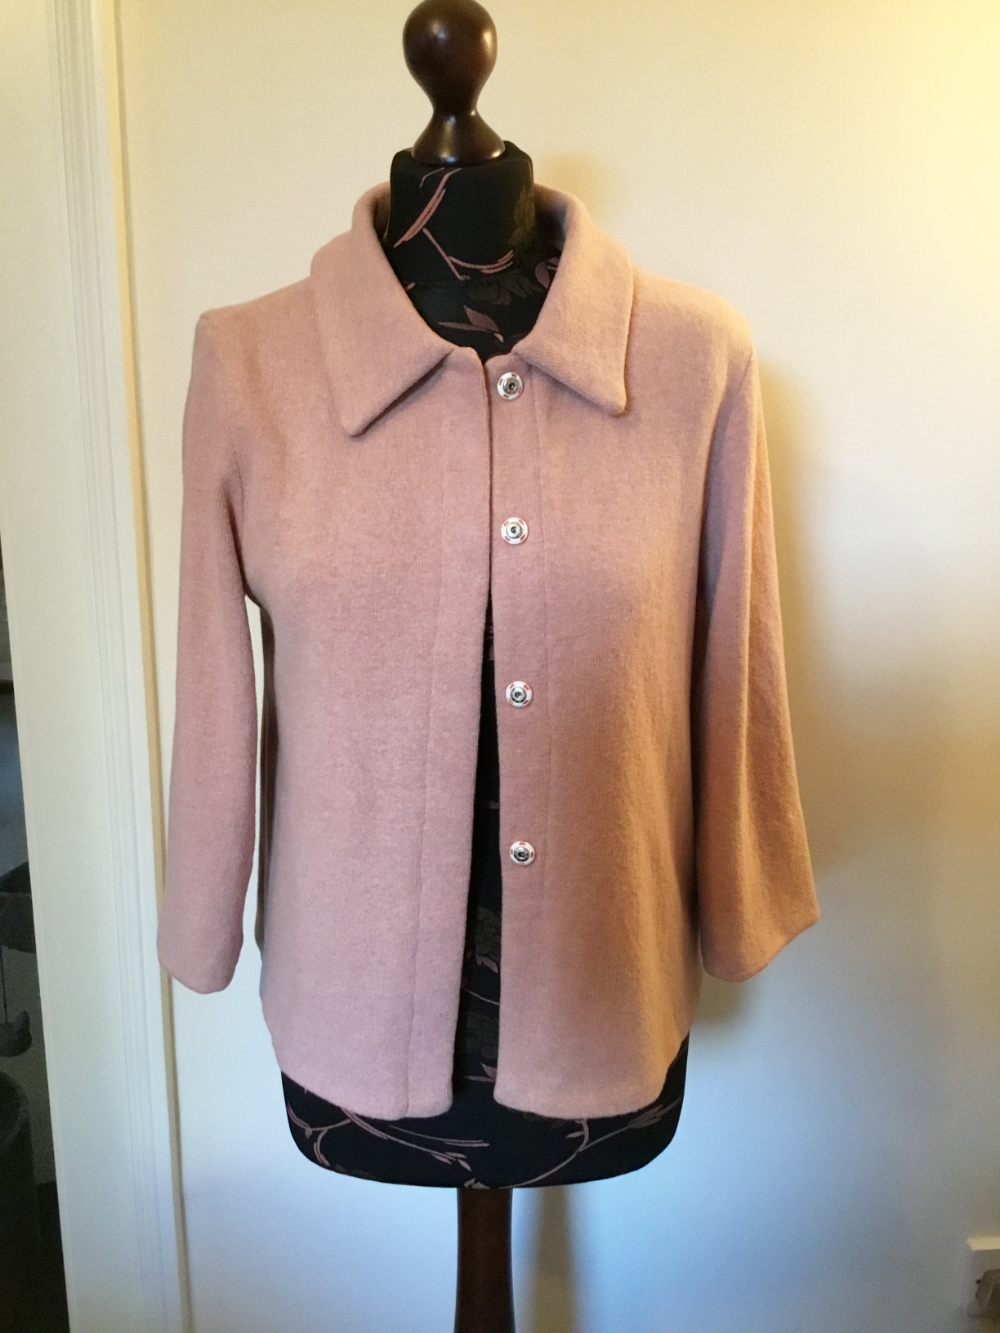 blush pink cotton mix jumper knit jacket with collar and snap fasteners